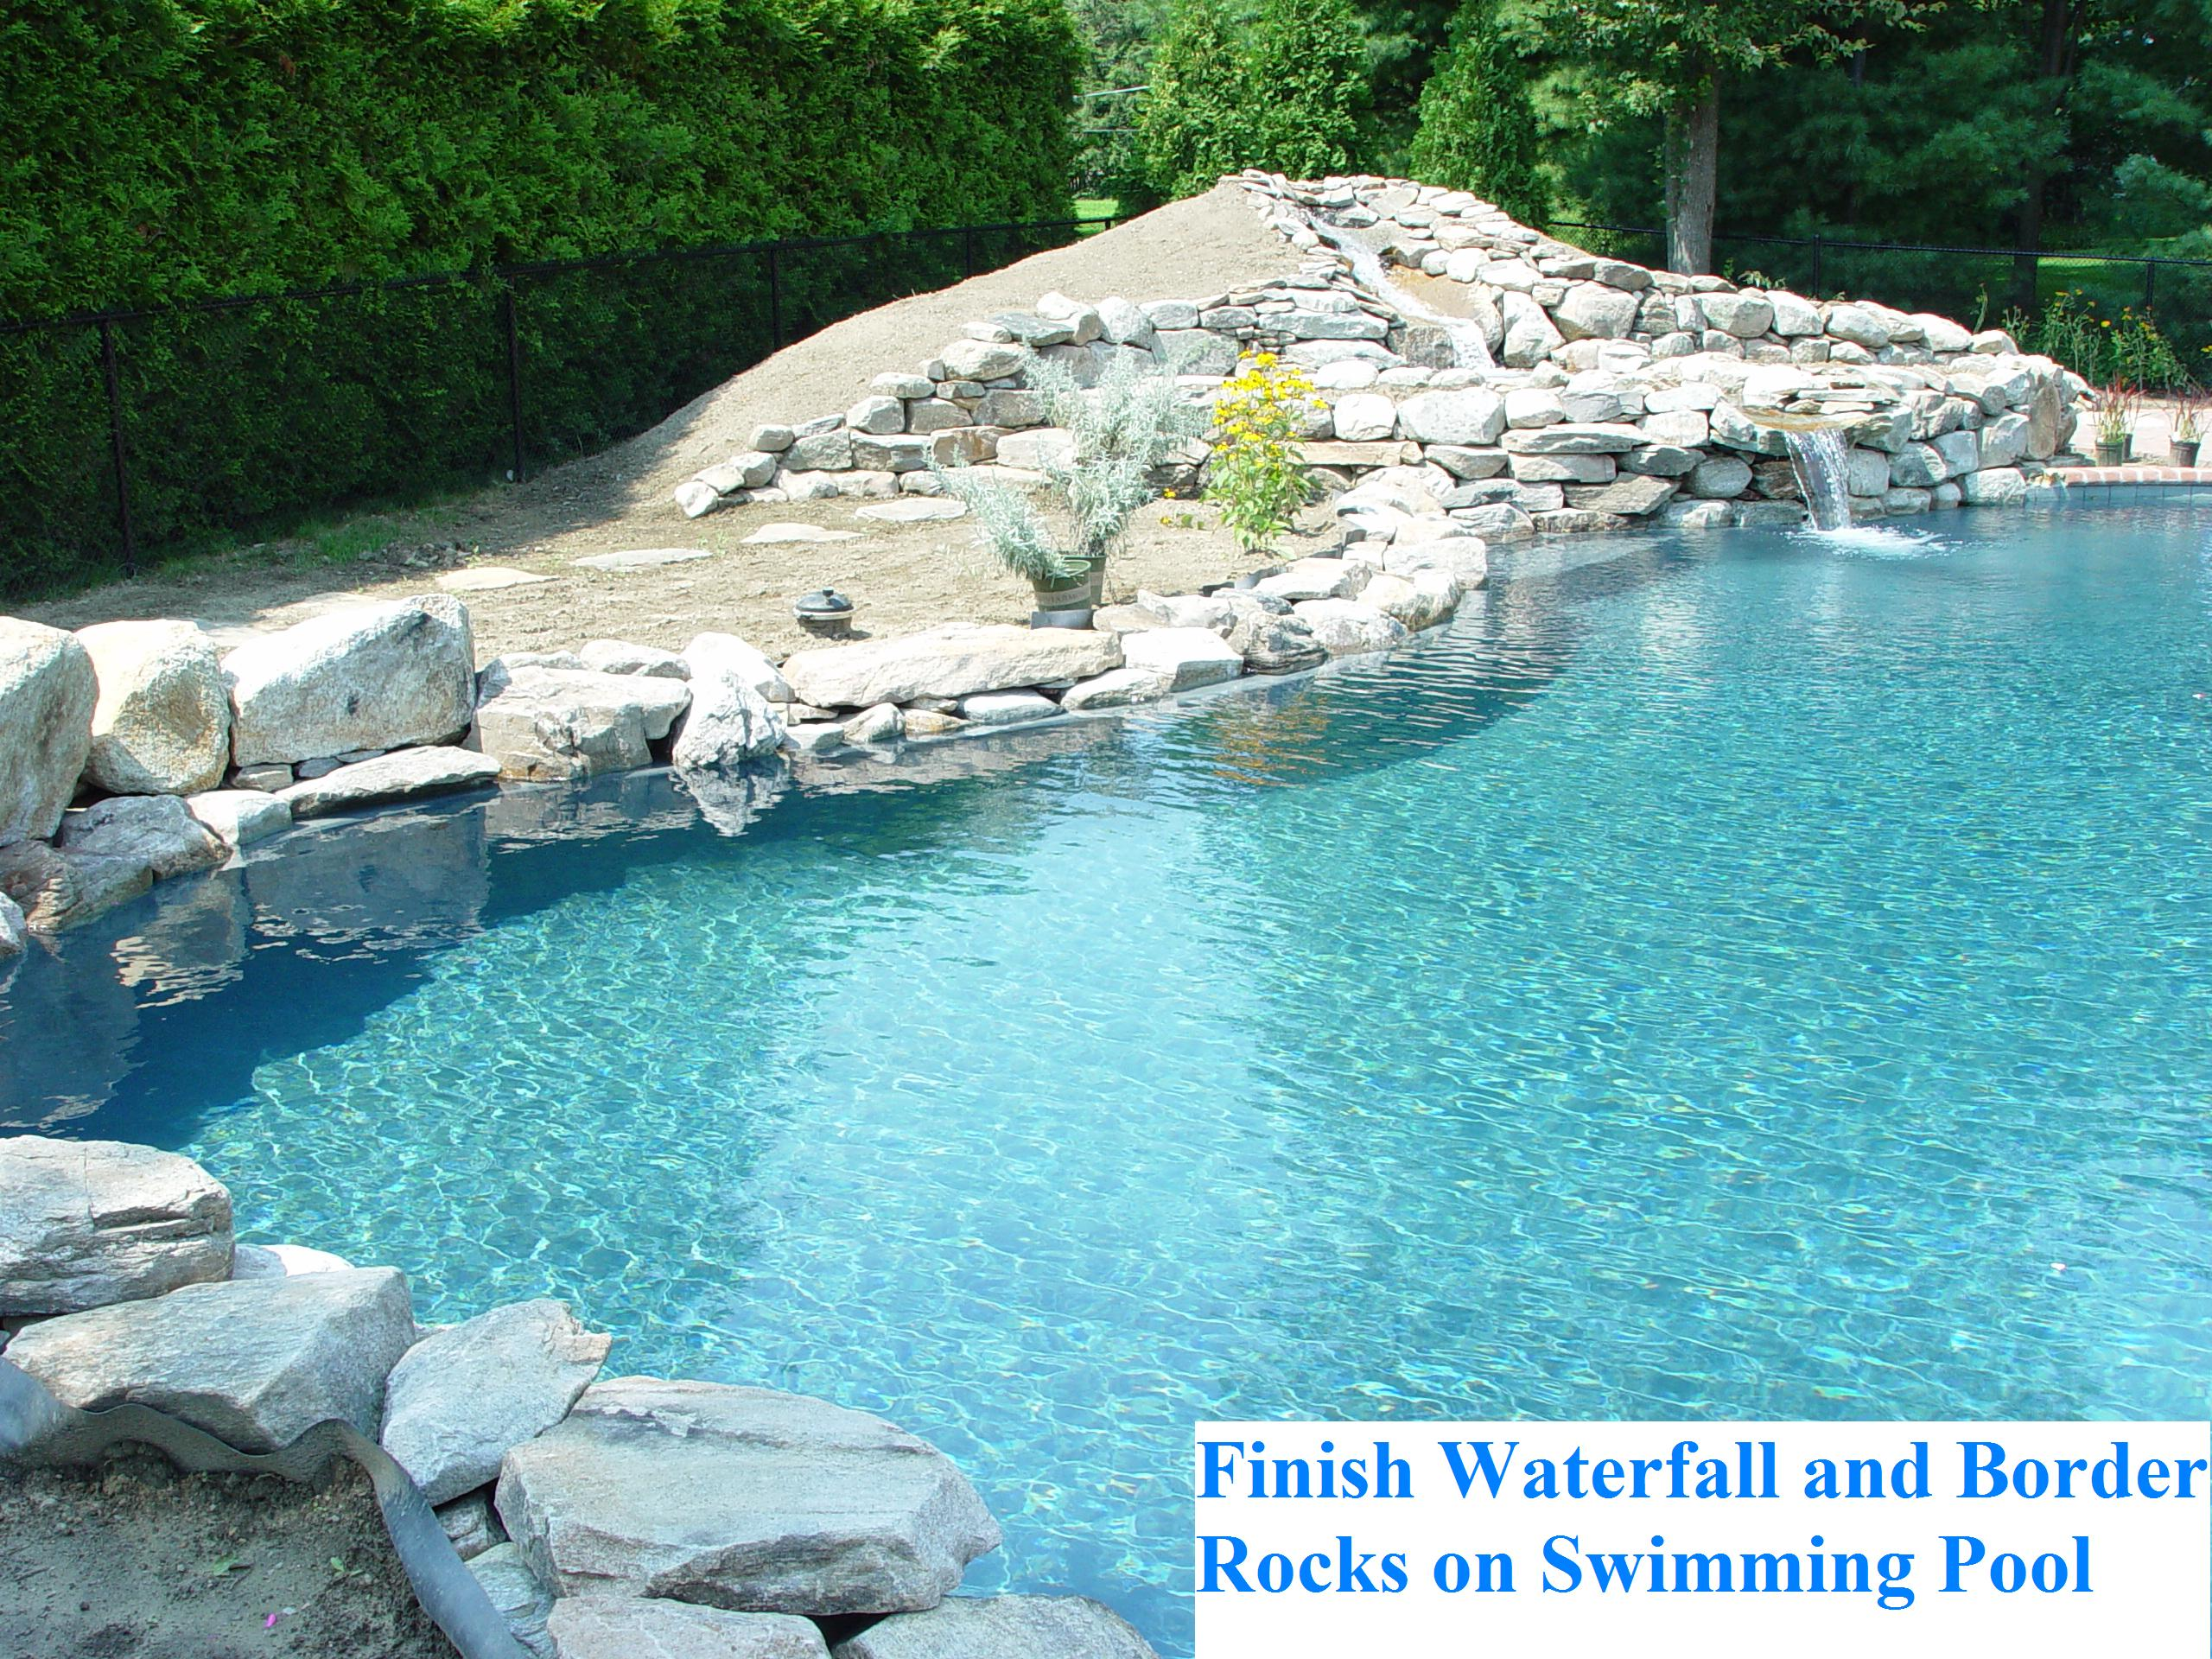 Waterfall on swimming pools | A Piece of Paradise